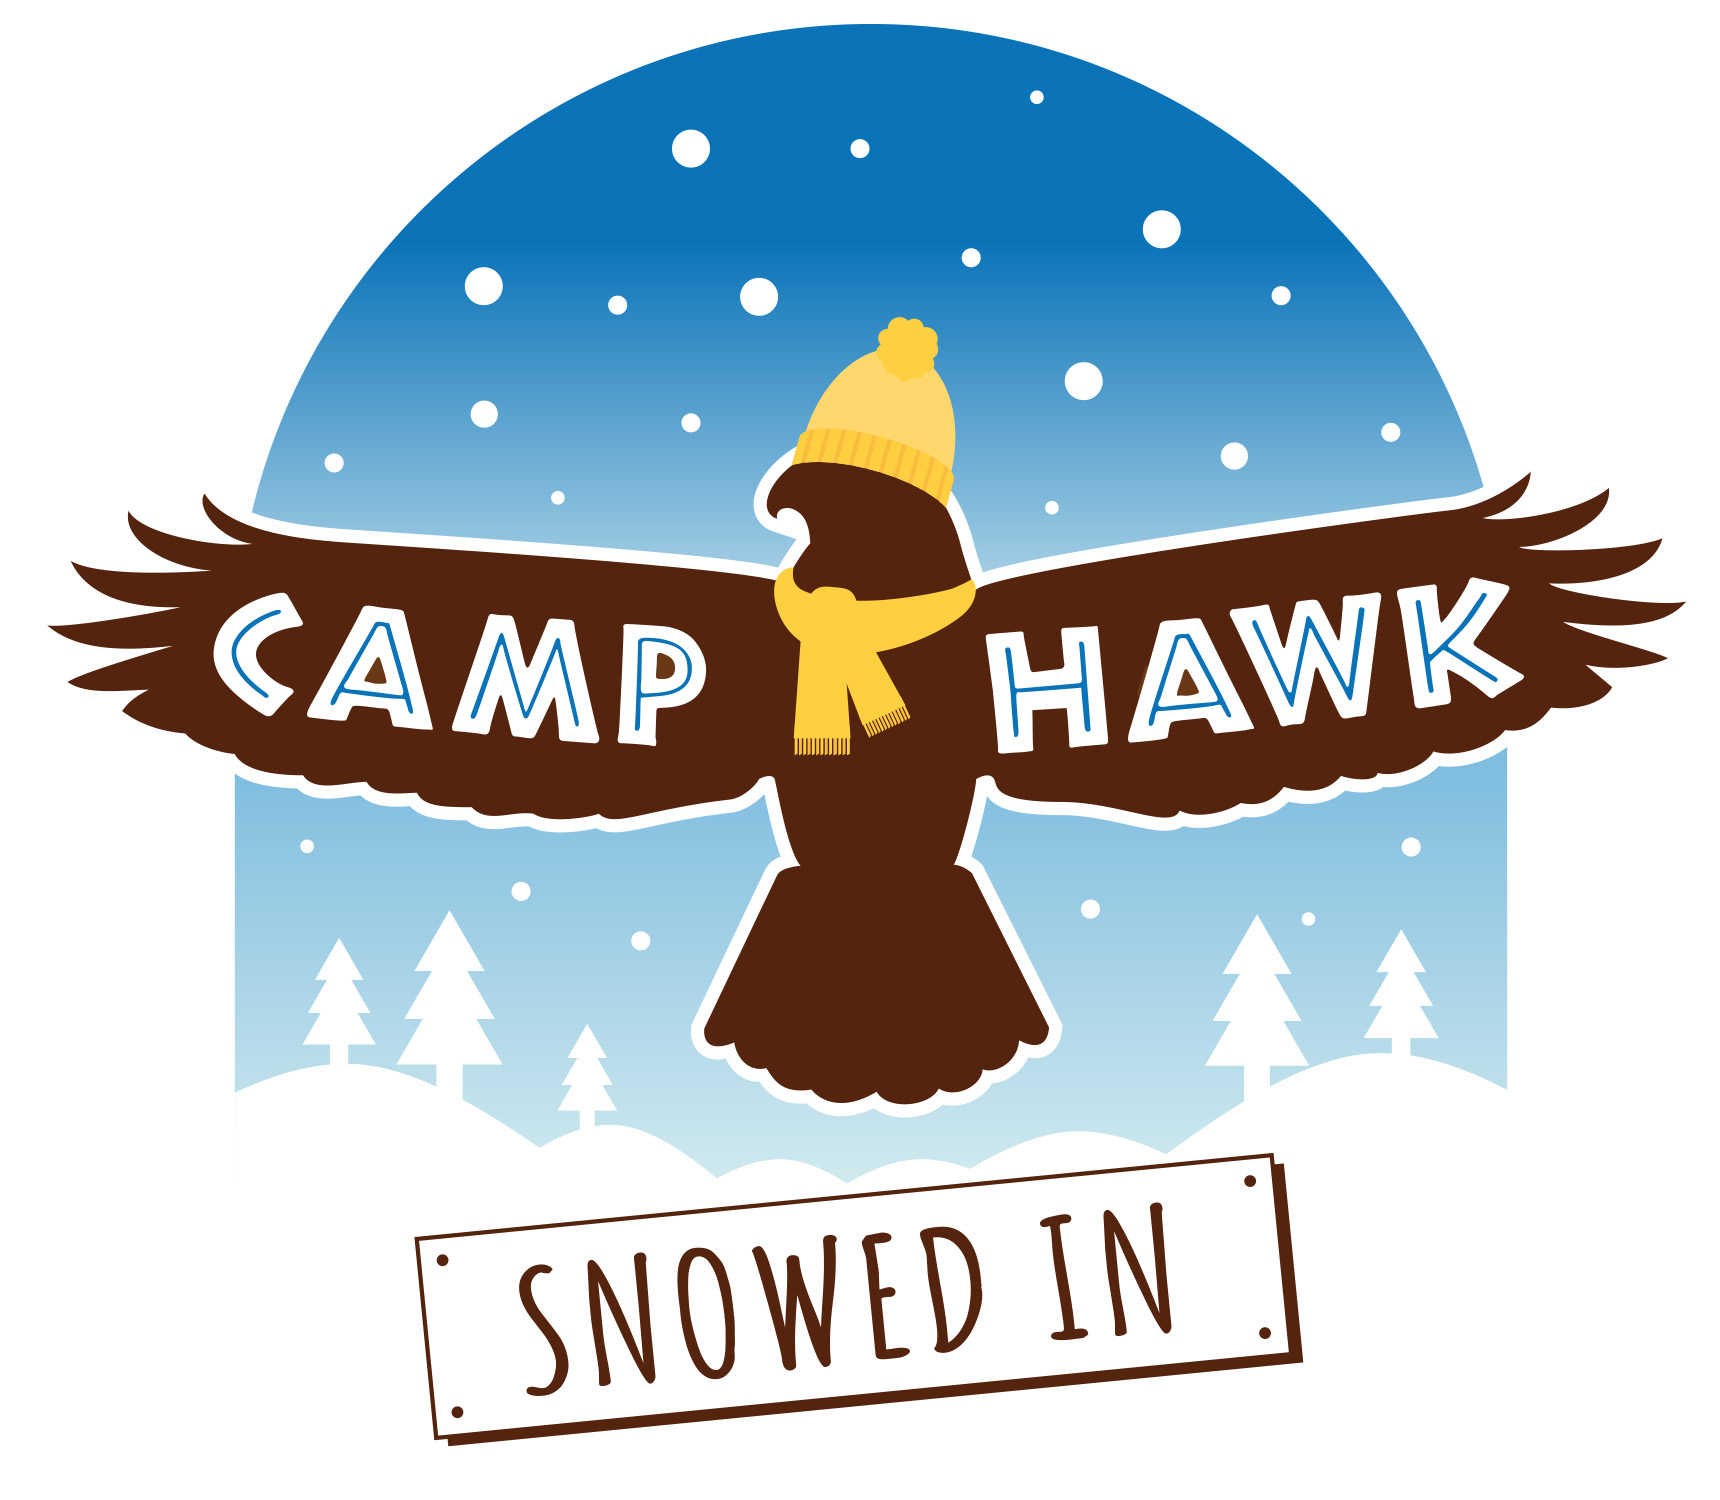 Camp Hawk: Snowed In logo